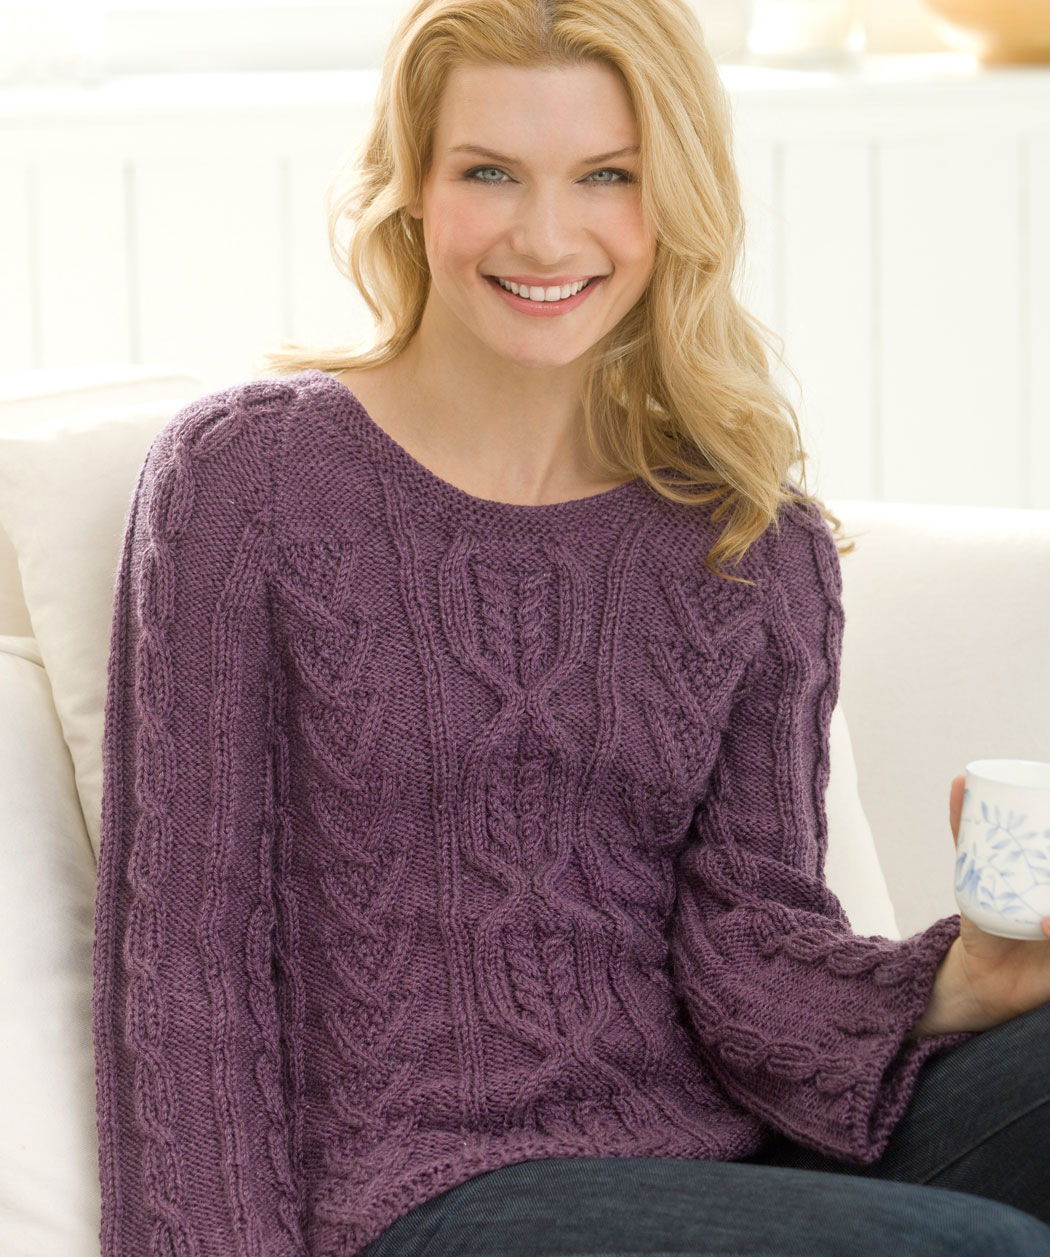 Knitting Pattern Aran Jumper : Cable Knit Sweater Patterns A Knitting Blog